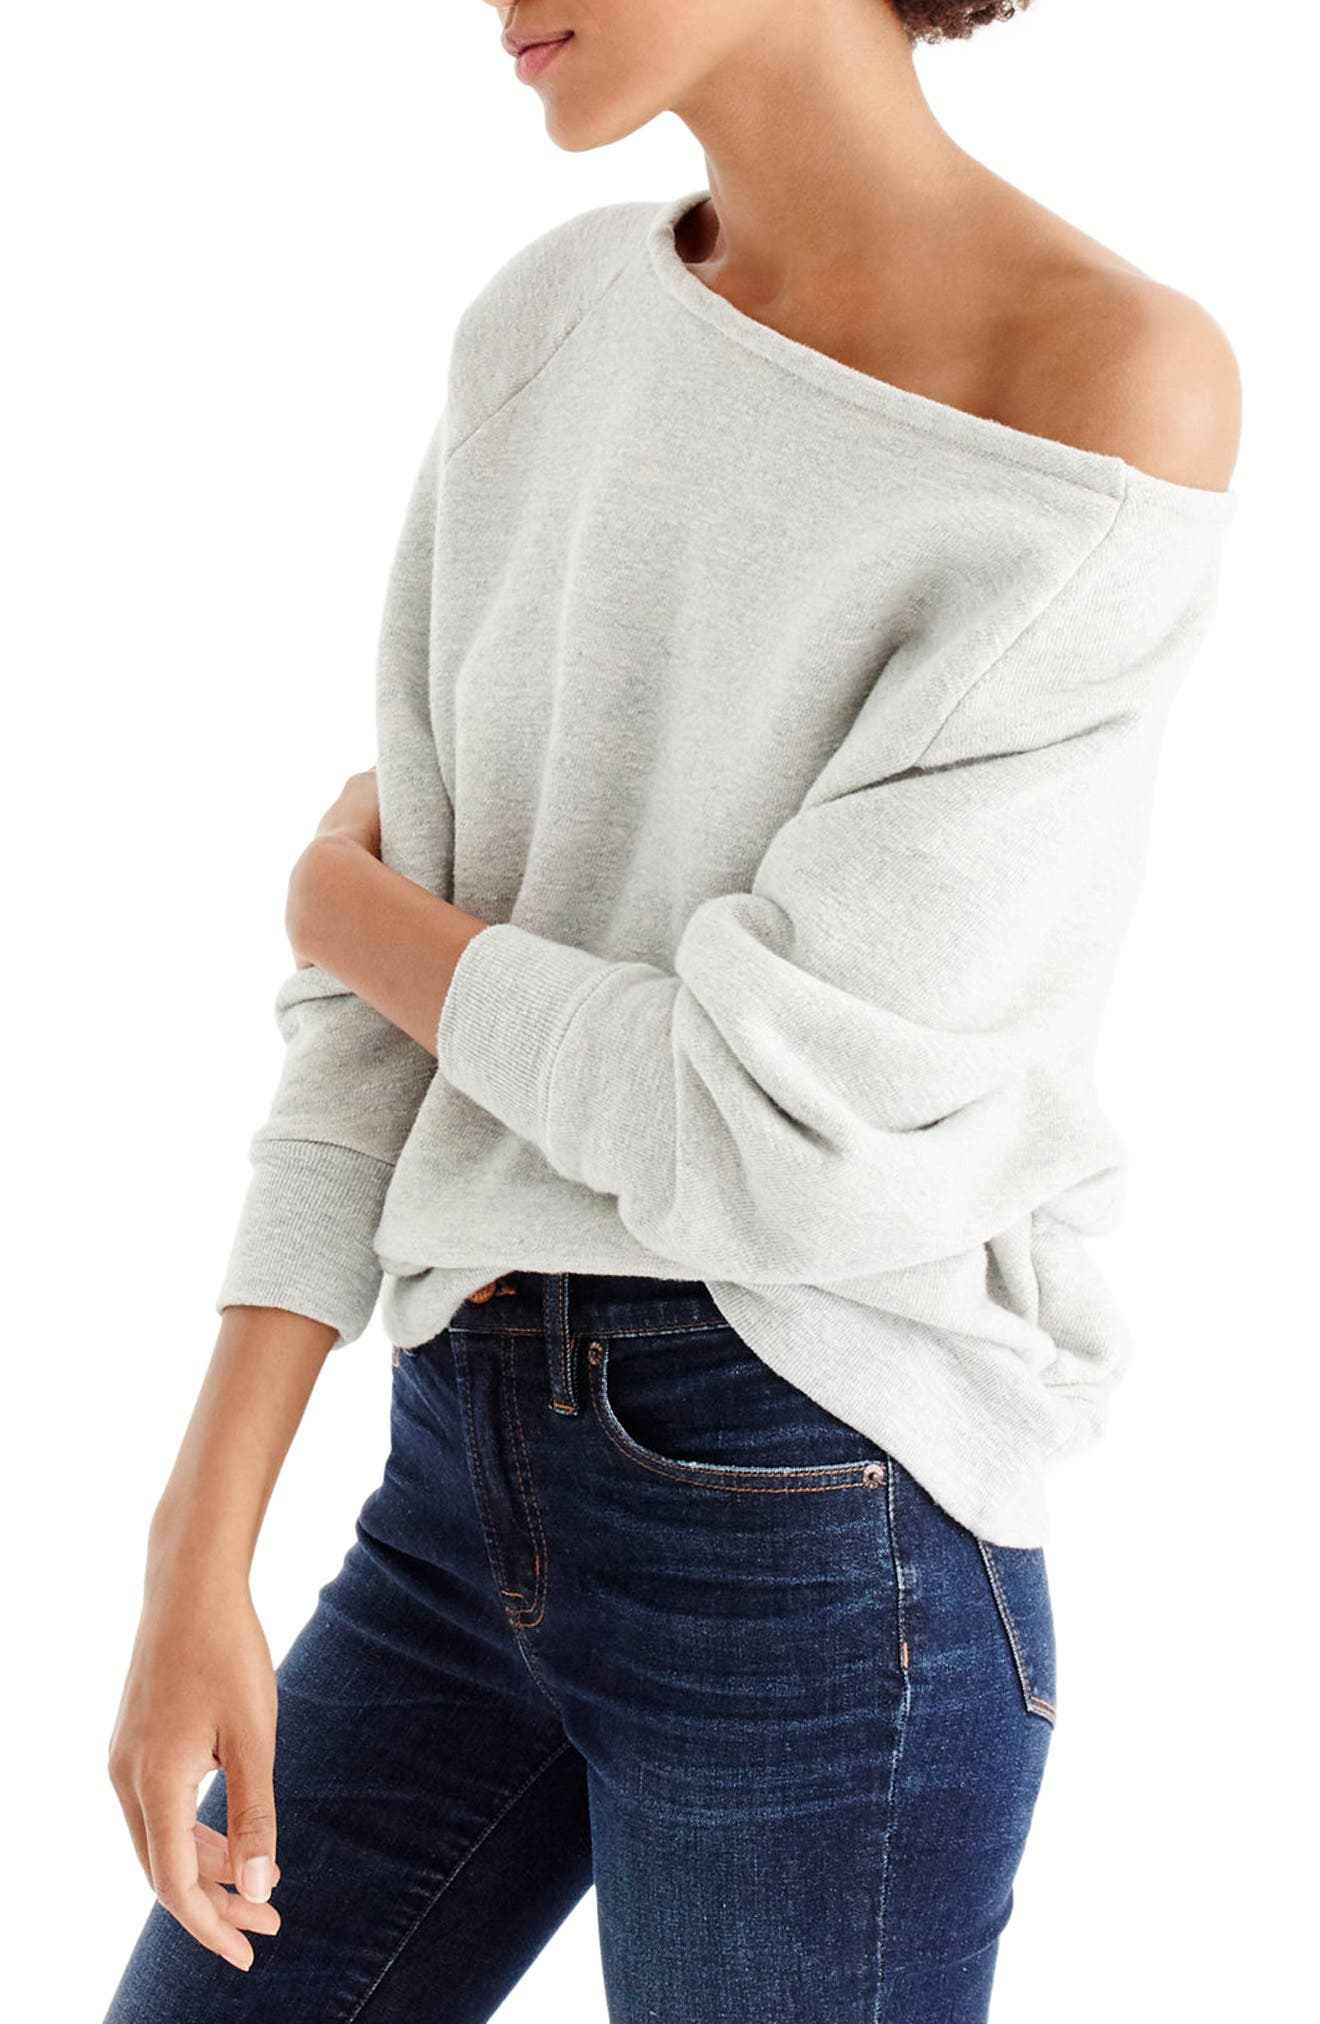 J.Crew Easy Sweatshirt